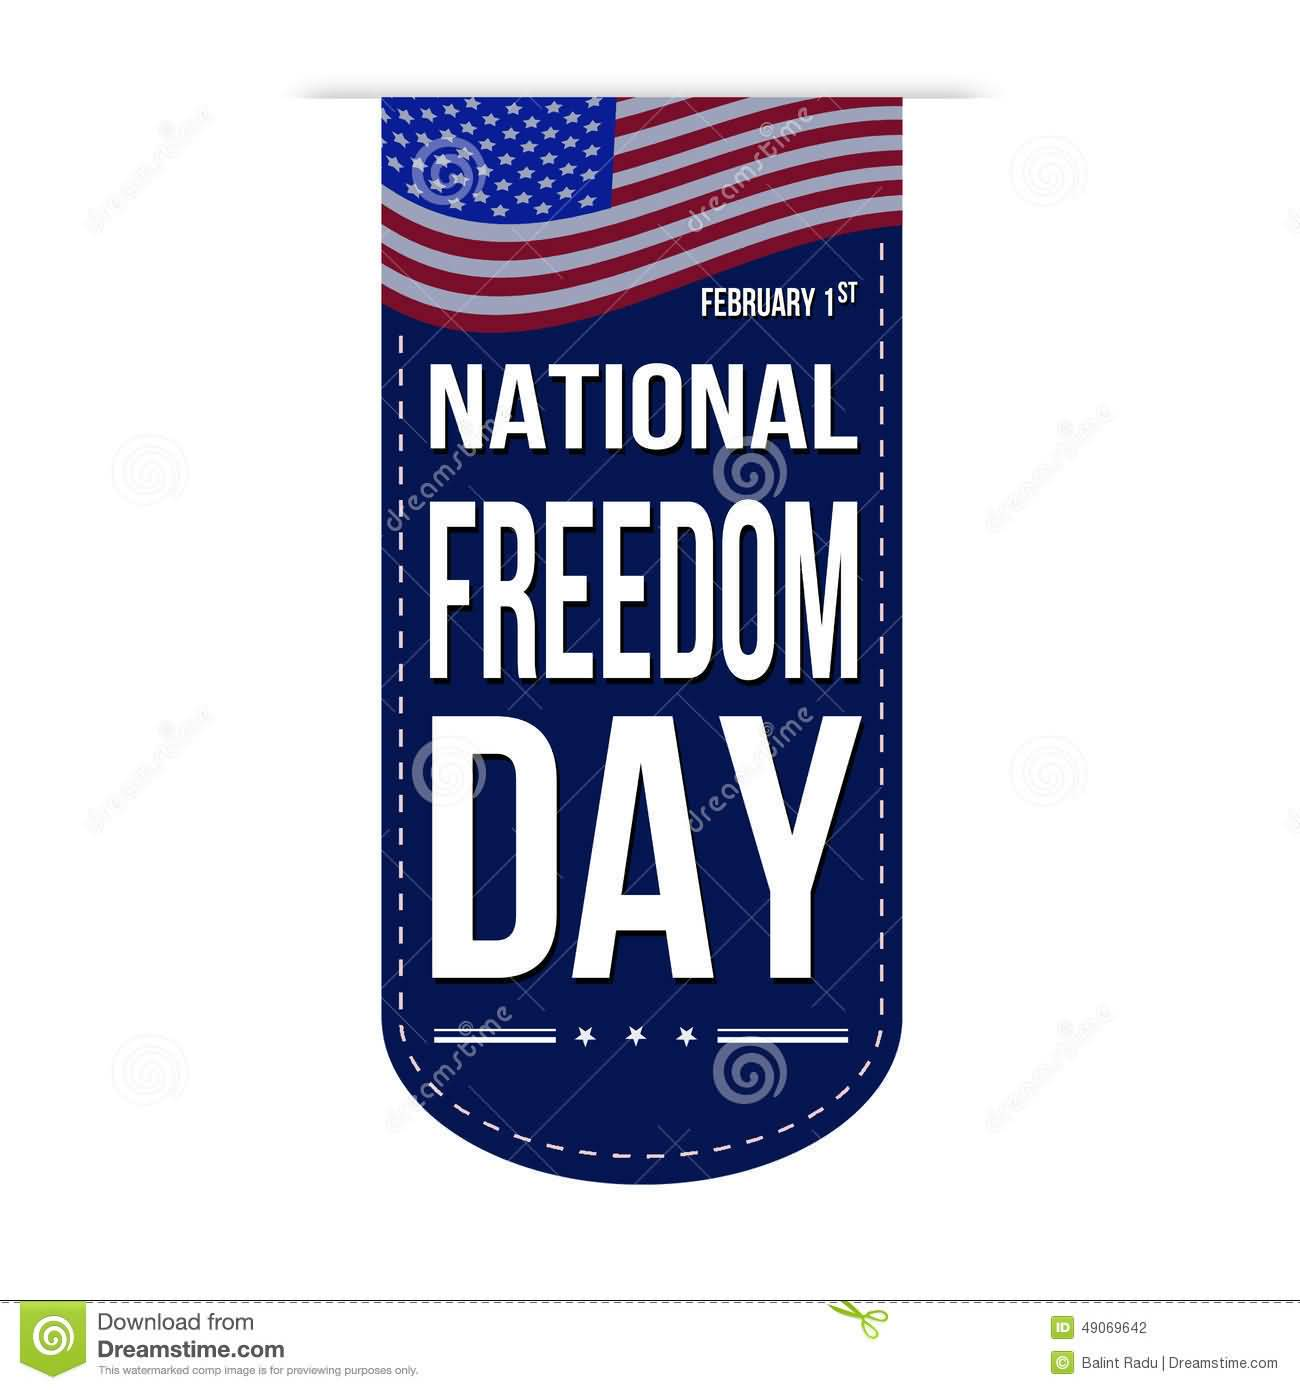 58-National Freedom Day